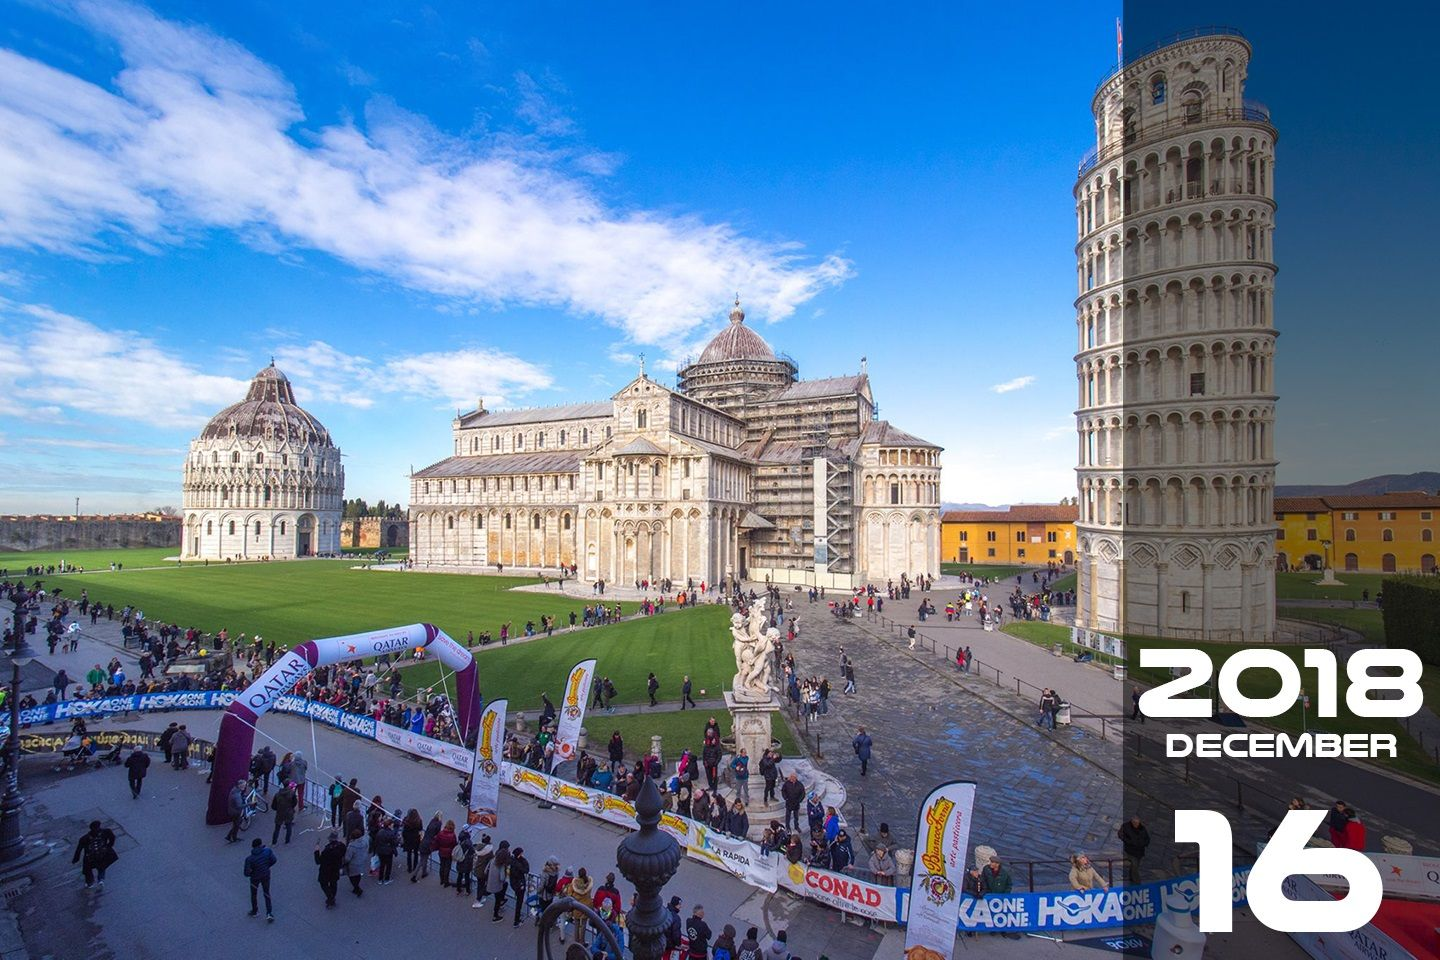 Pisa City Marathon